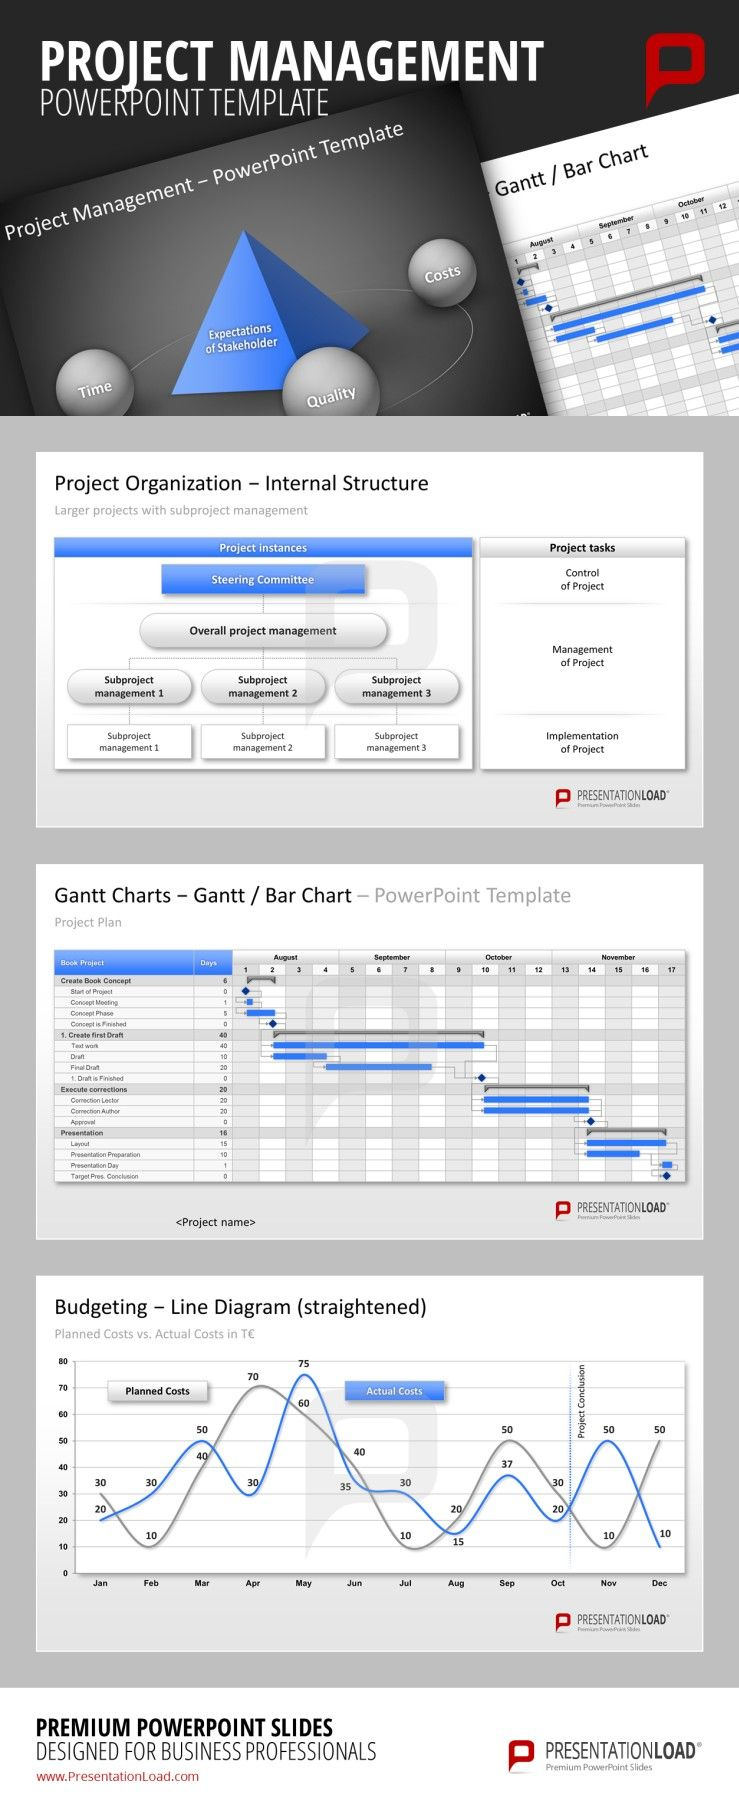 project management powerpoint templates for the planning, defining, Powerpoint templates